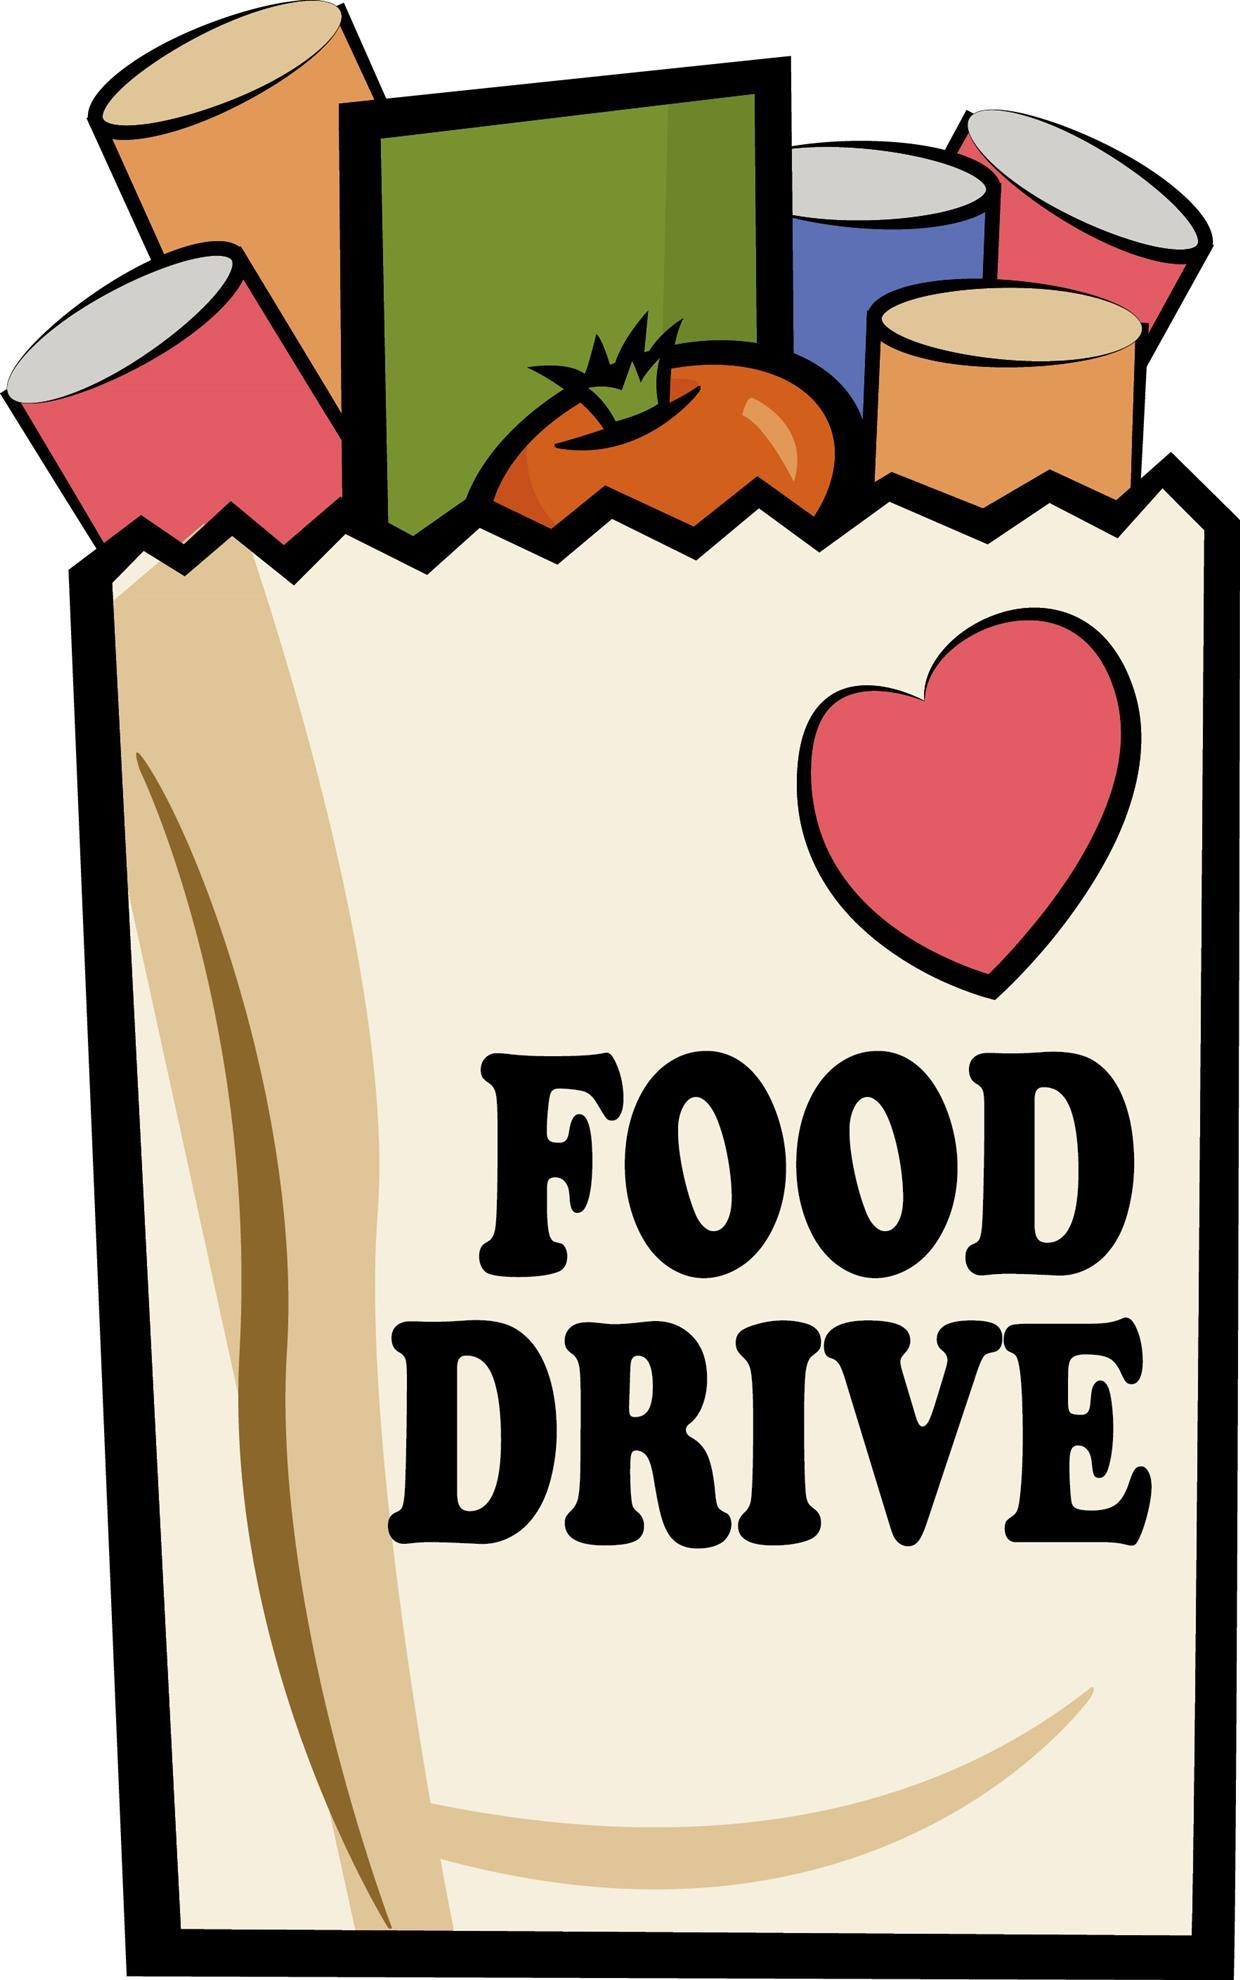 Holiday food drive clipart 7 » Clipart Portal.